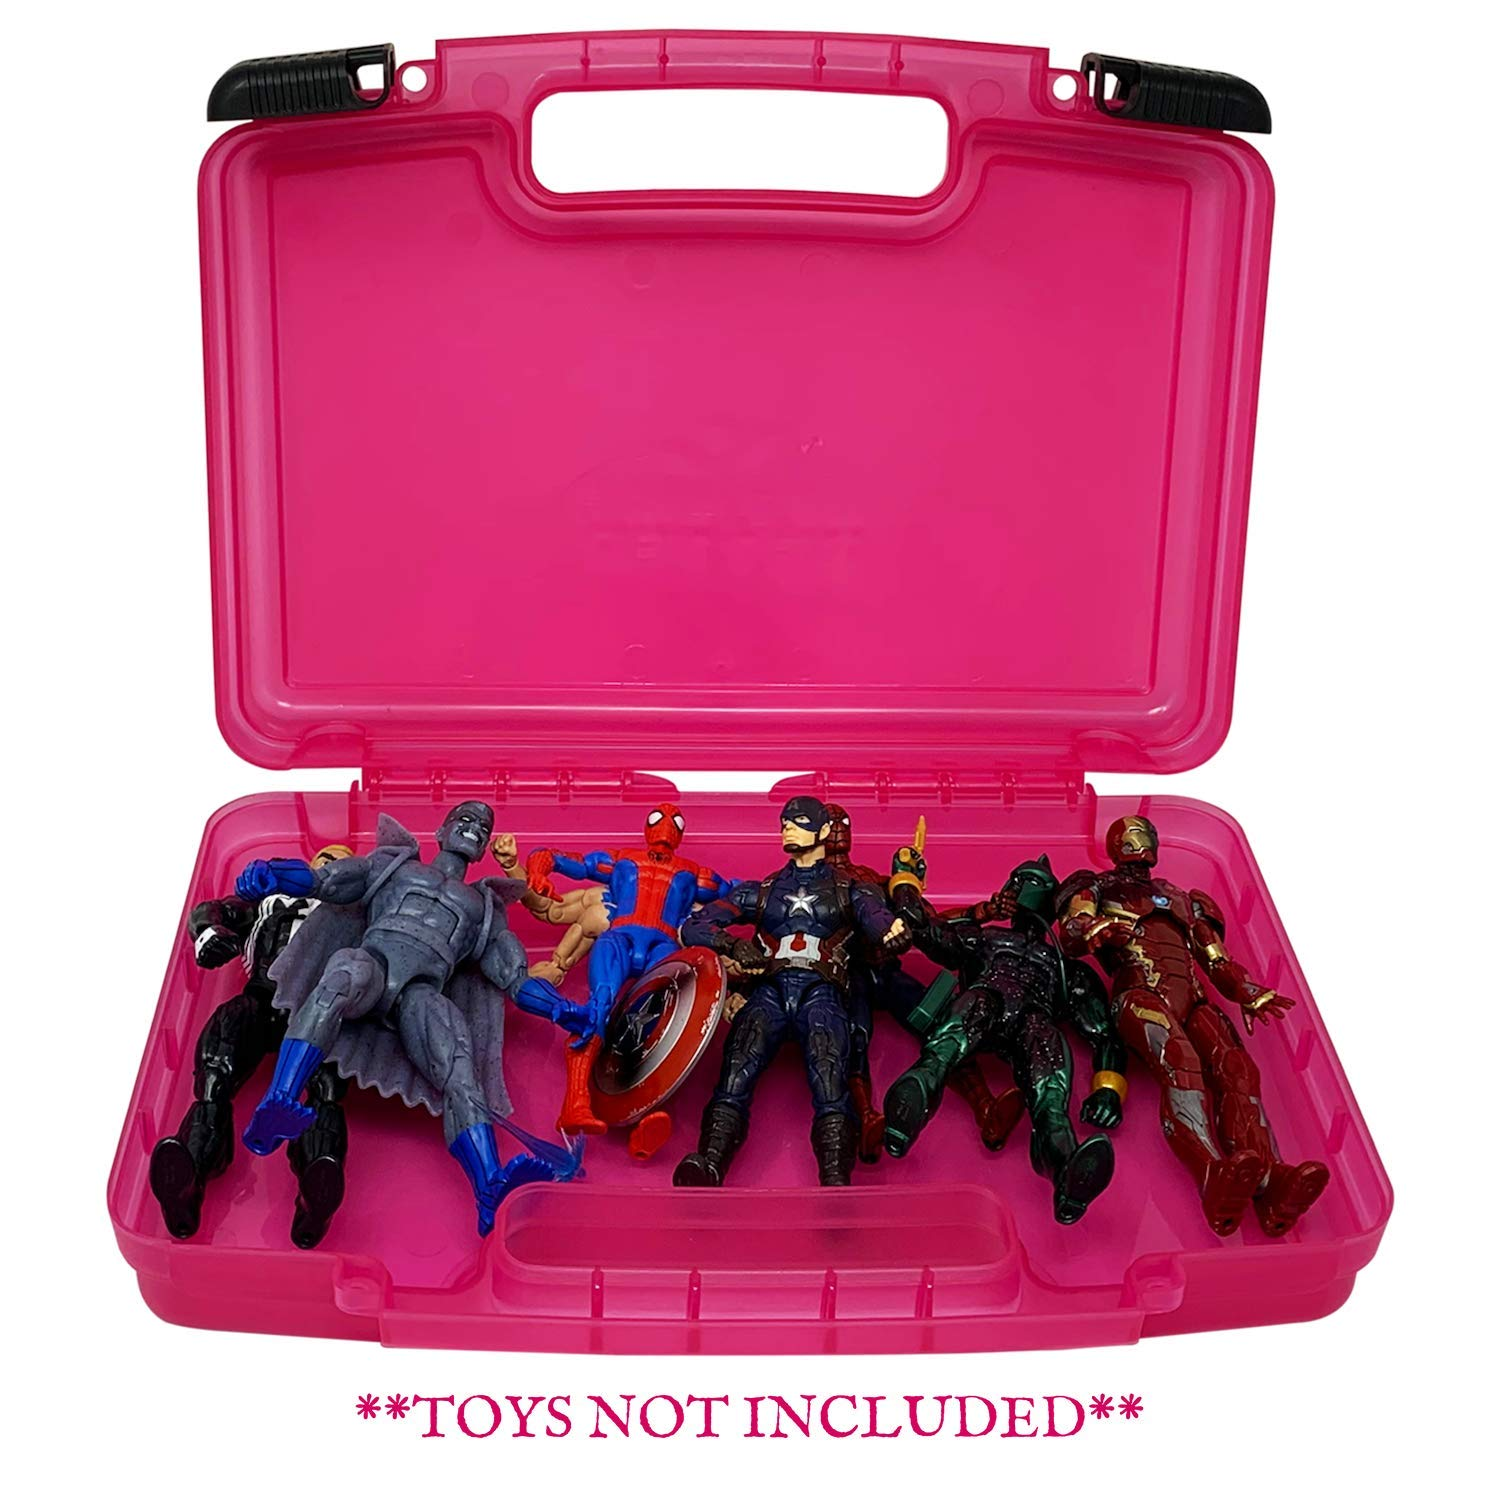 Compatible with 6 Inch Marvel Legends Action Figures Made by LMB Pink Toy Accessories Organization Carrying Case Life Made Better Portable Toy Storage Organizer